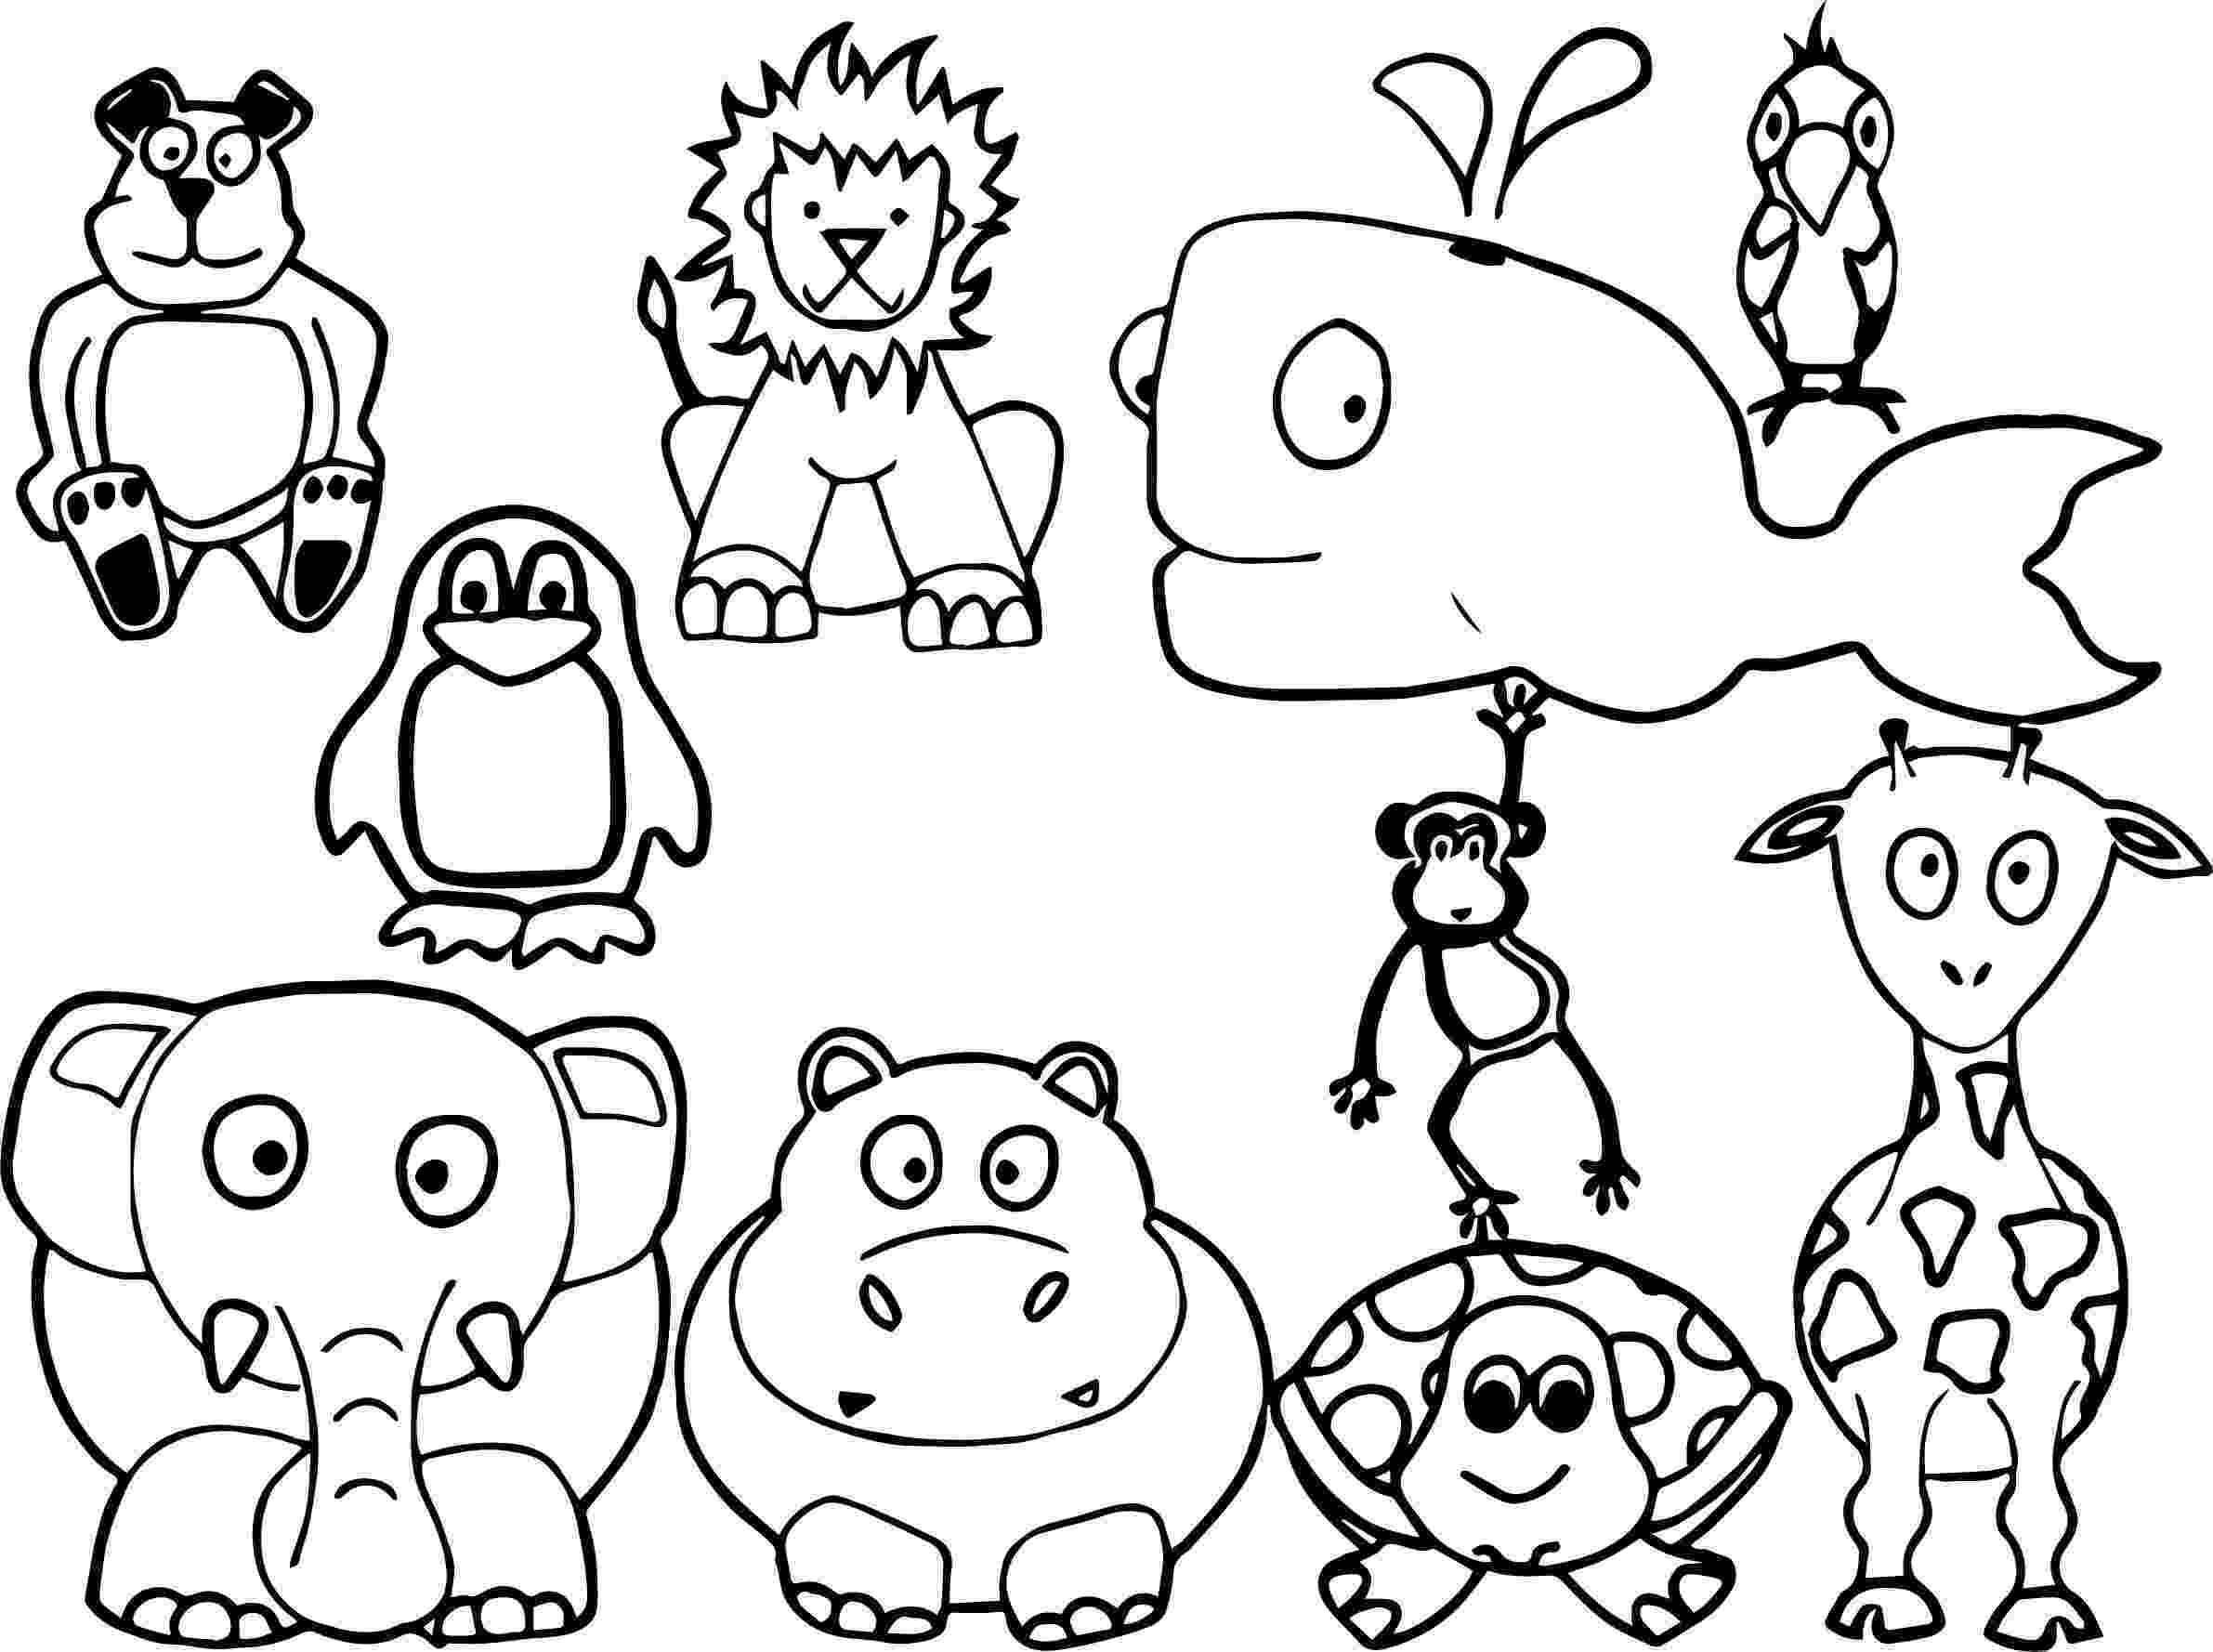 animal coloring pages for kids frog animal coloring pages for kids for pages kids animal coloring